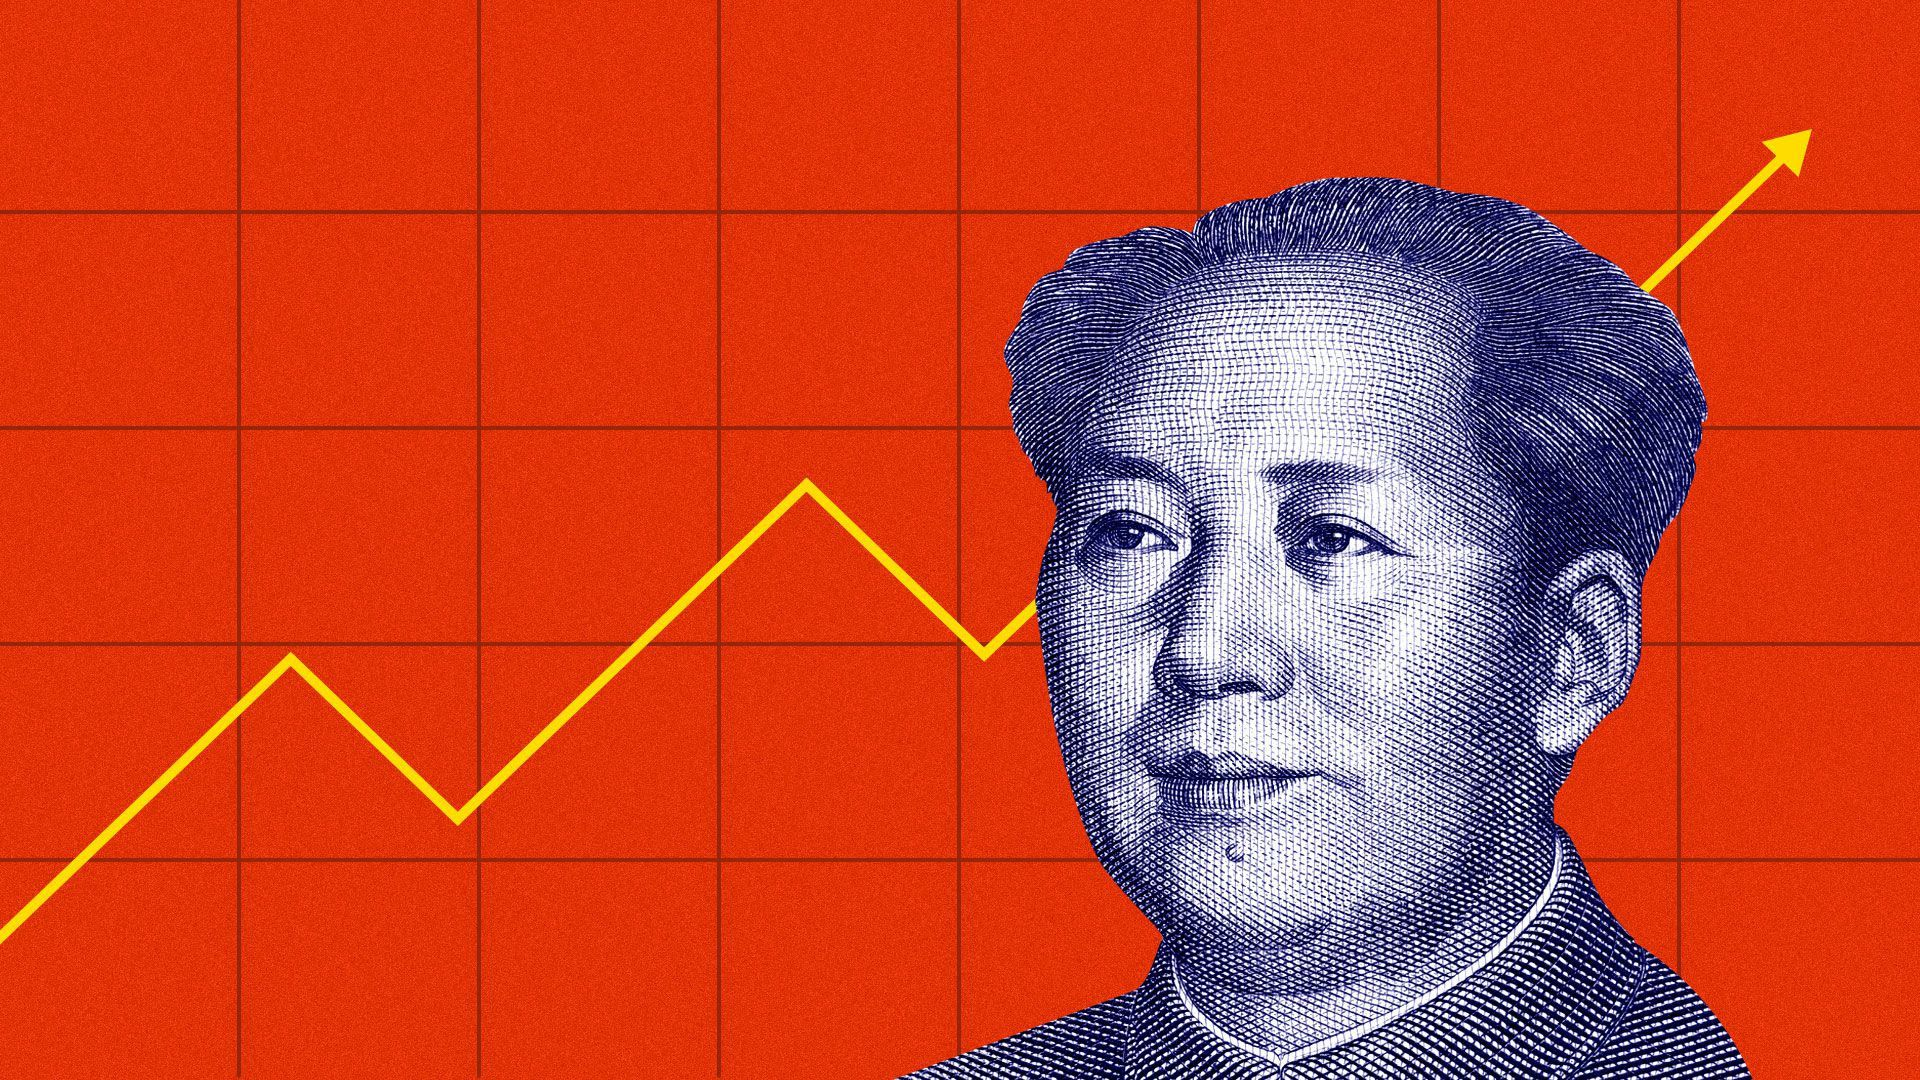 Illustration of China's former leader Mao Zedong